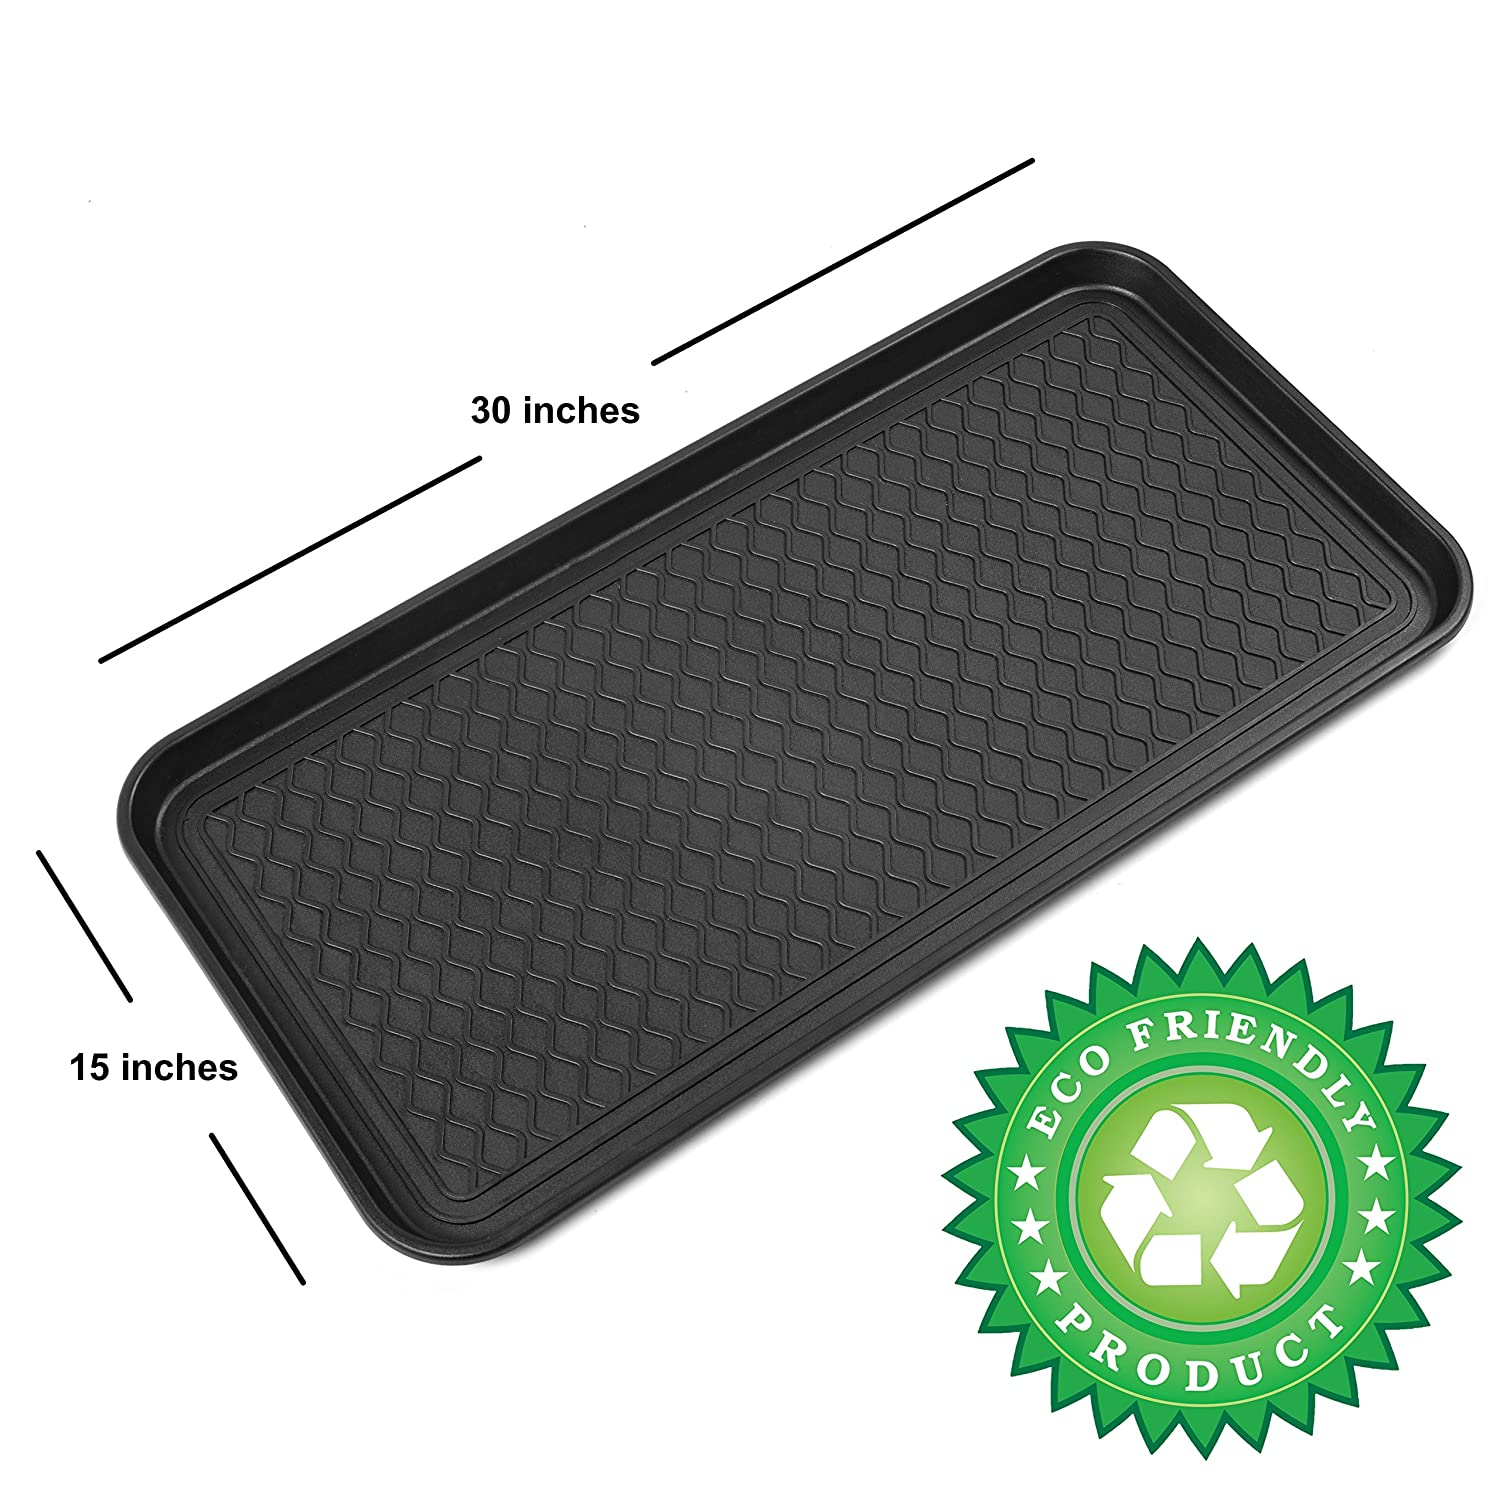 Premium Eco Friendly Multi-Purpose Boot Mat & Tray for Cat Litter, Dog Food Bowls, Paint, Shoes Gardening & More - 30''x15''x1.2'' - Indoor & Outdoor Mat for Floor Protection or Trunk Cargo - Utility Tray for Pantry ..